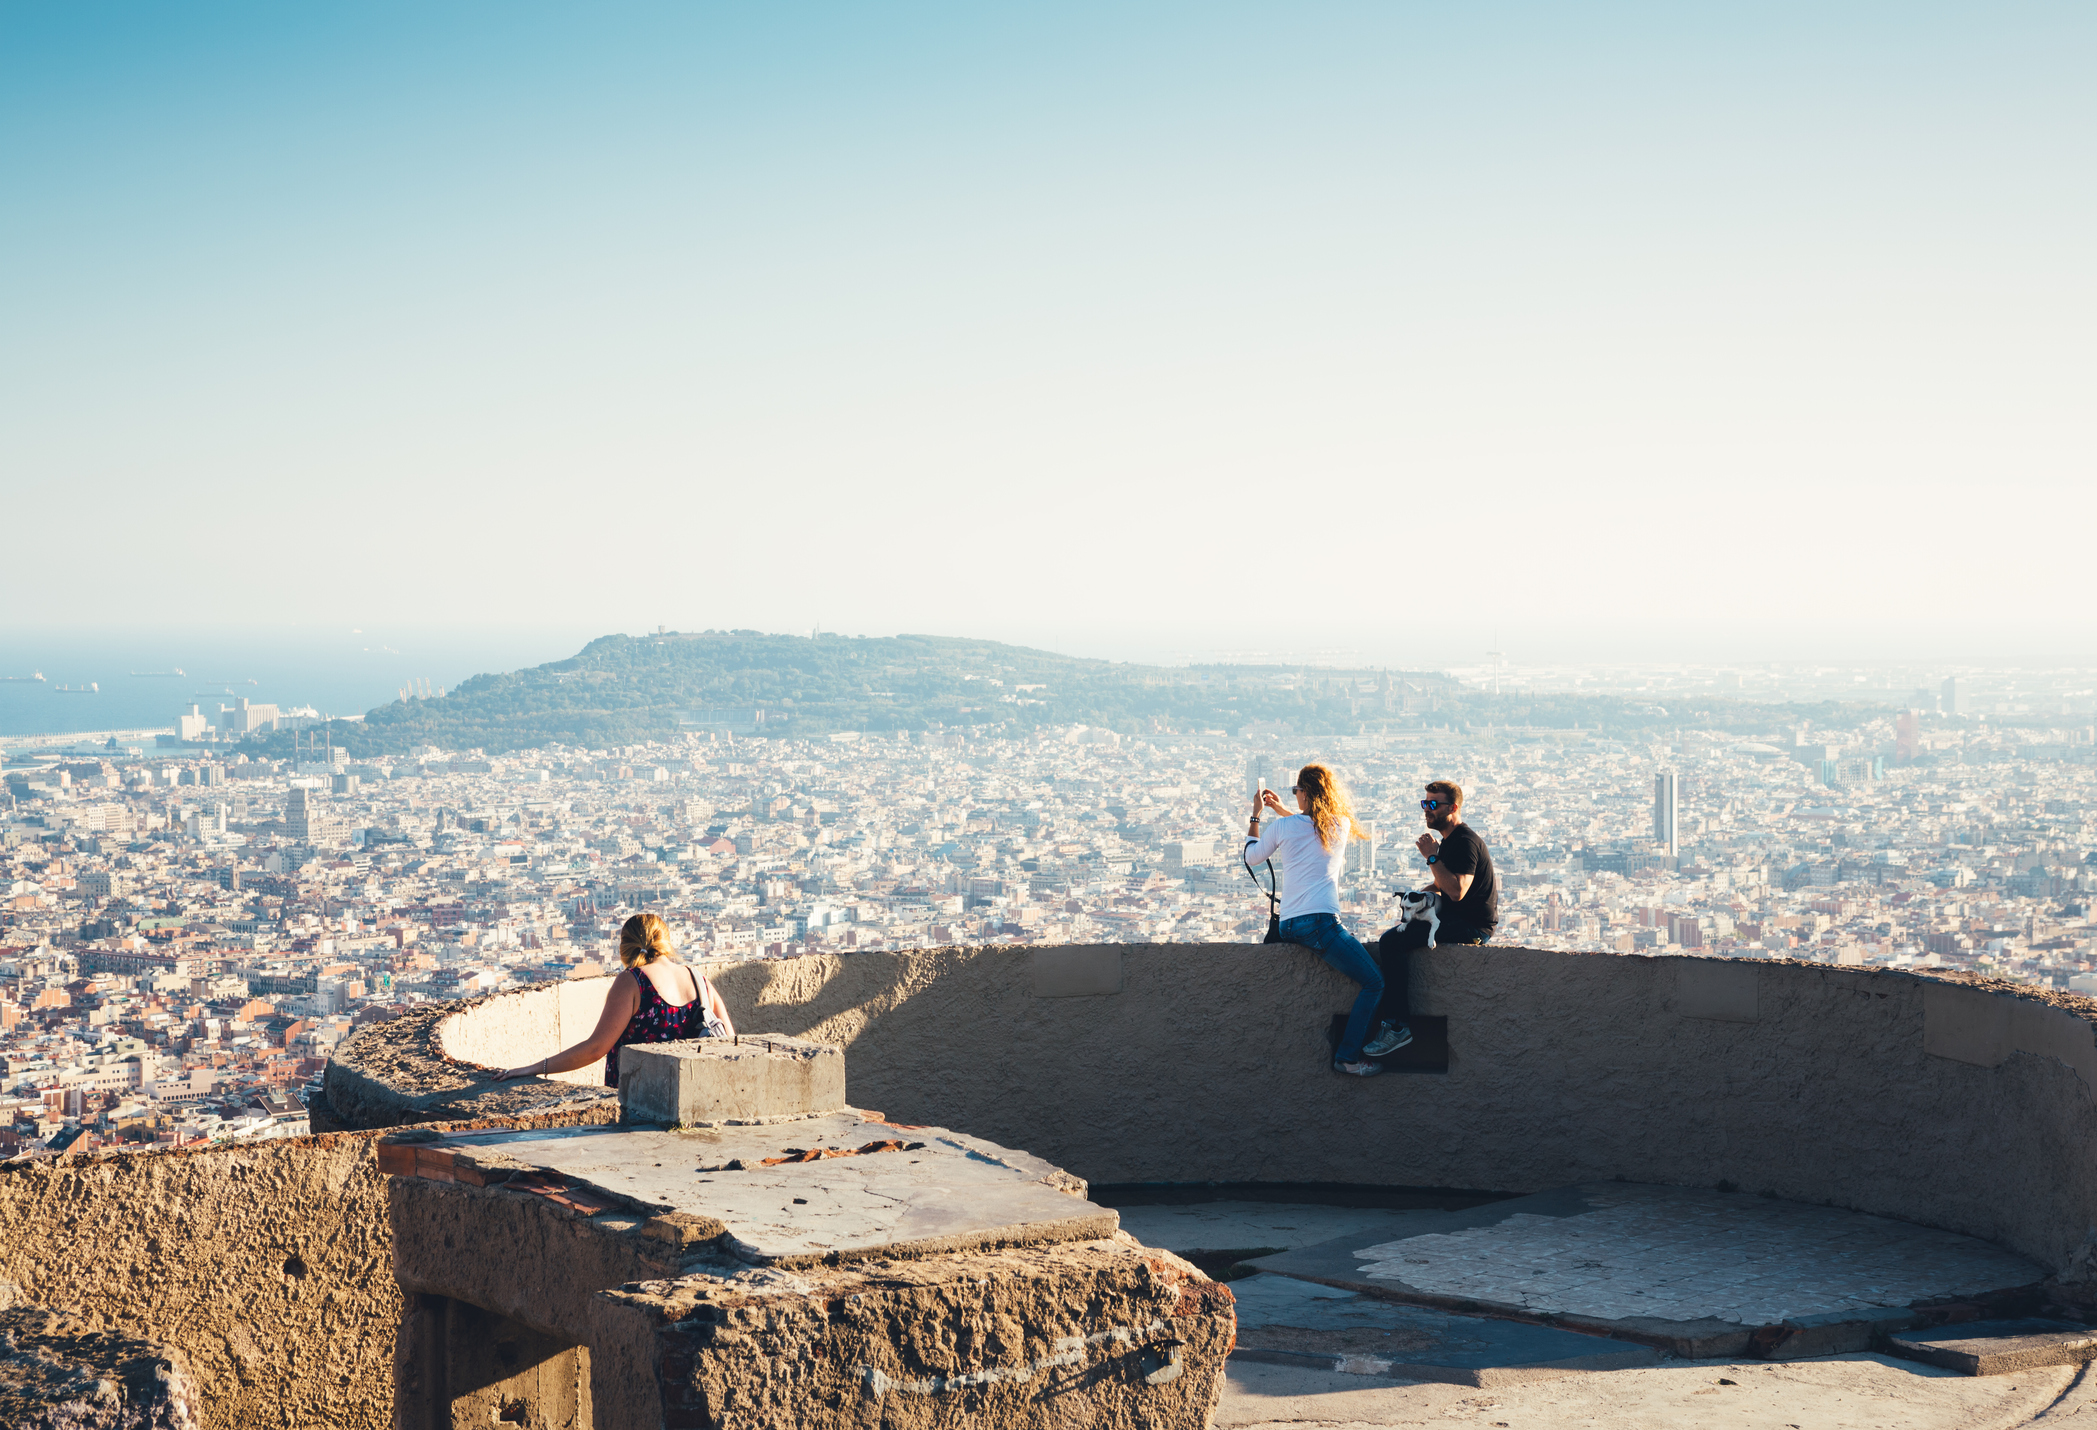 Barcelona, Spain - September 28, 2016: Tourists on Bunkers del Carmel (Búnquers del Carmel) enjoying the viewpoint in Barcelona. Young couple is sitting on the wall. Woman photographing the Barcelona cityscape with Montjoic hill and sea in the distance.